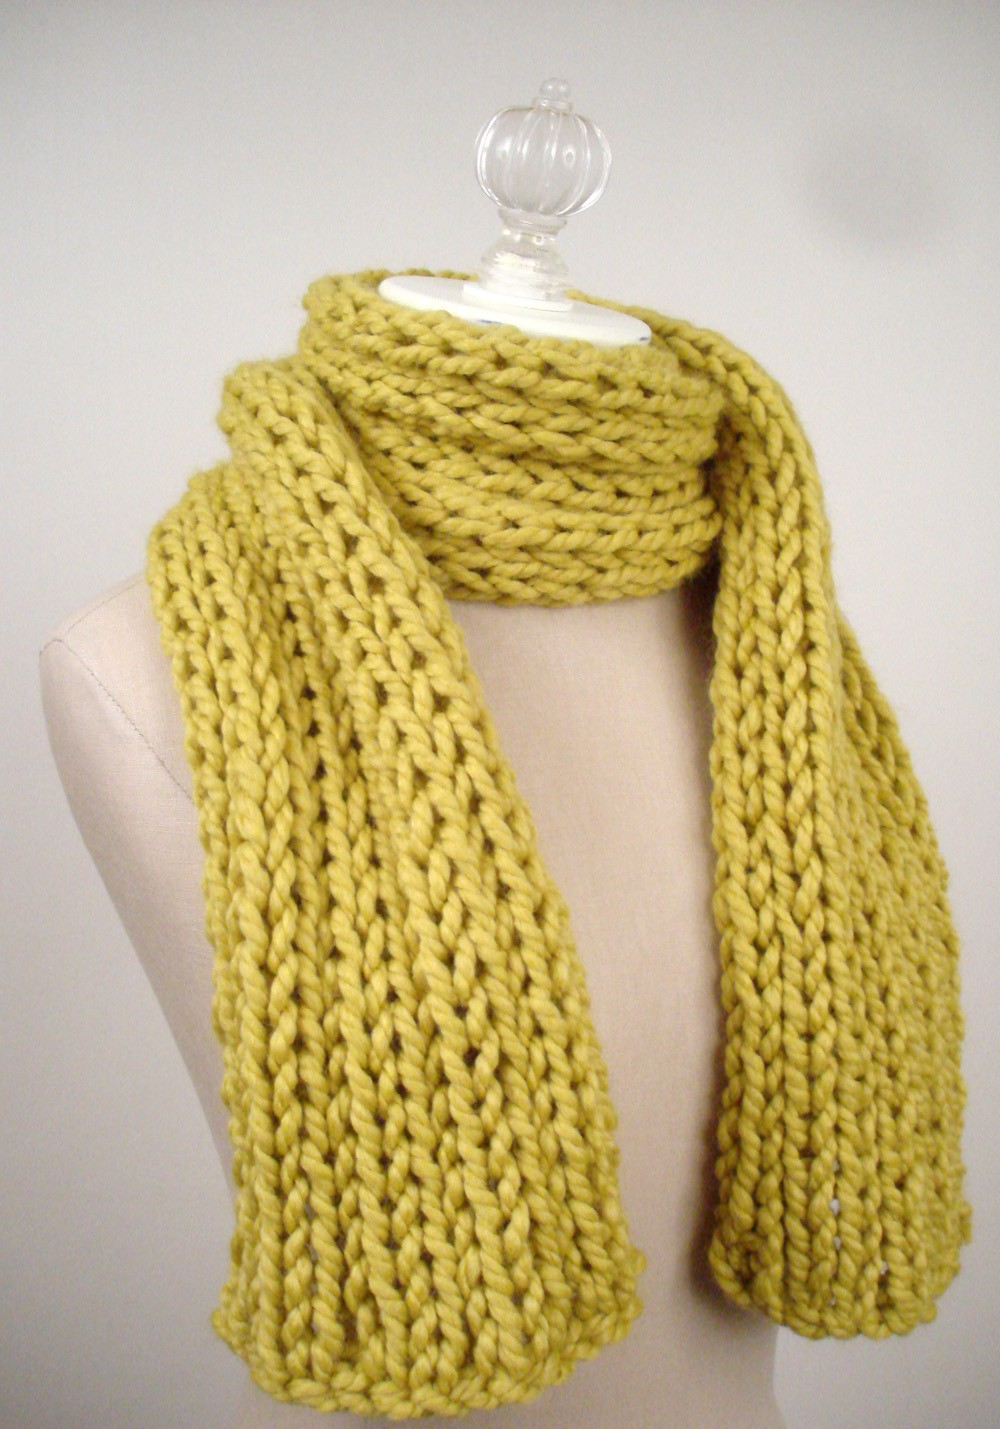 Free Knitting Patterns For Scarves For Beginners : EASY KNIT SCARF PATTERNS   Free Patterns